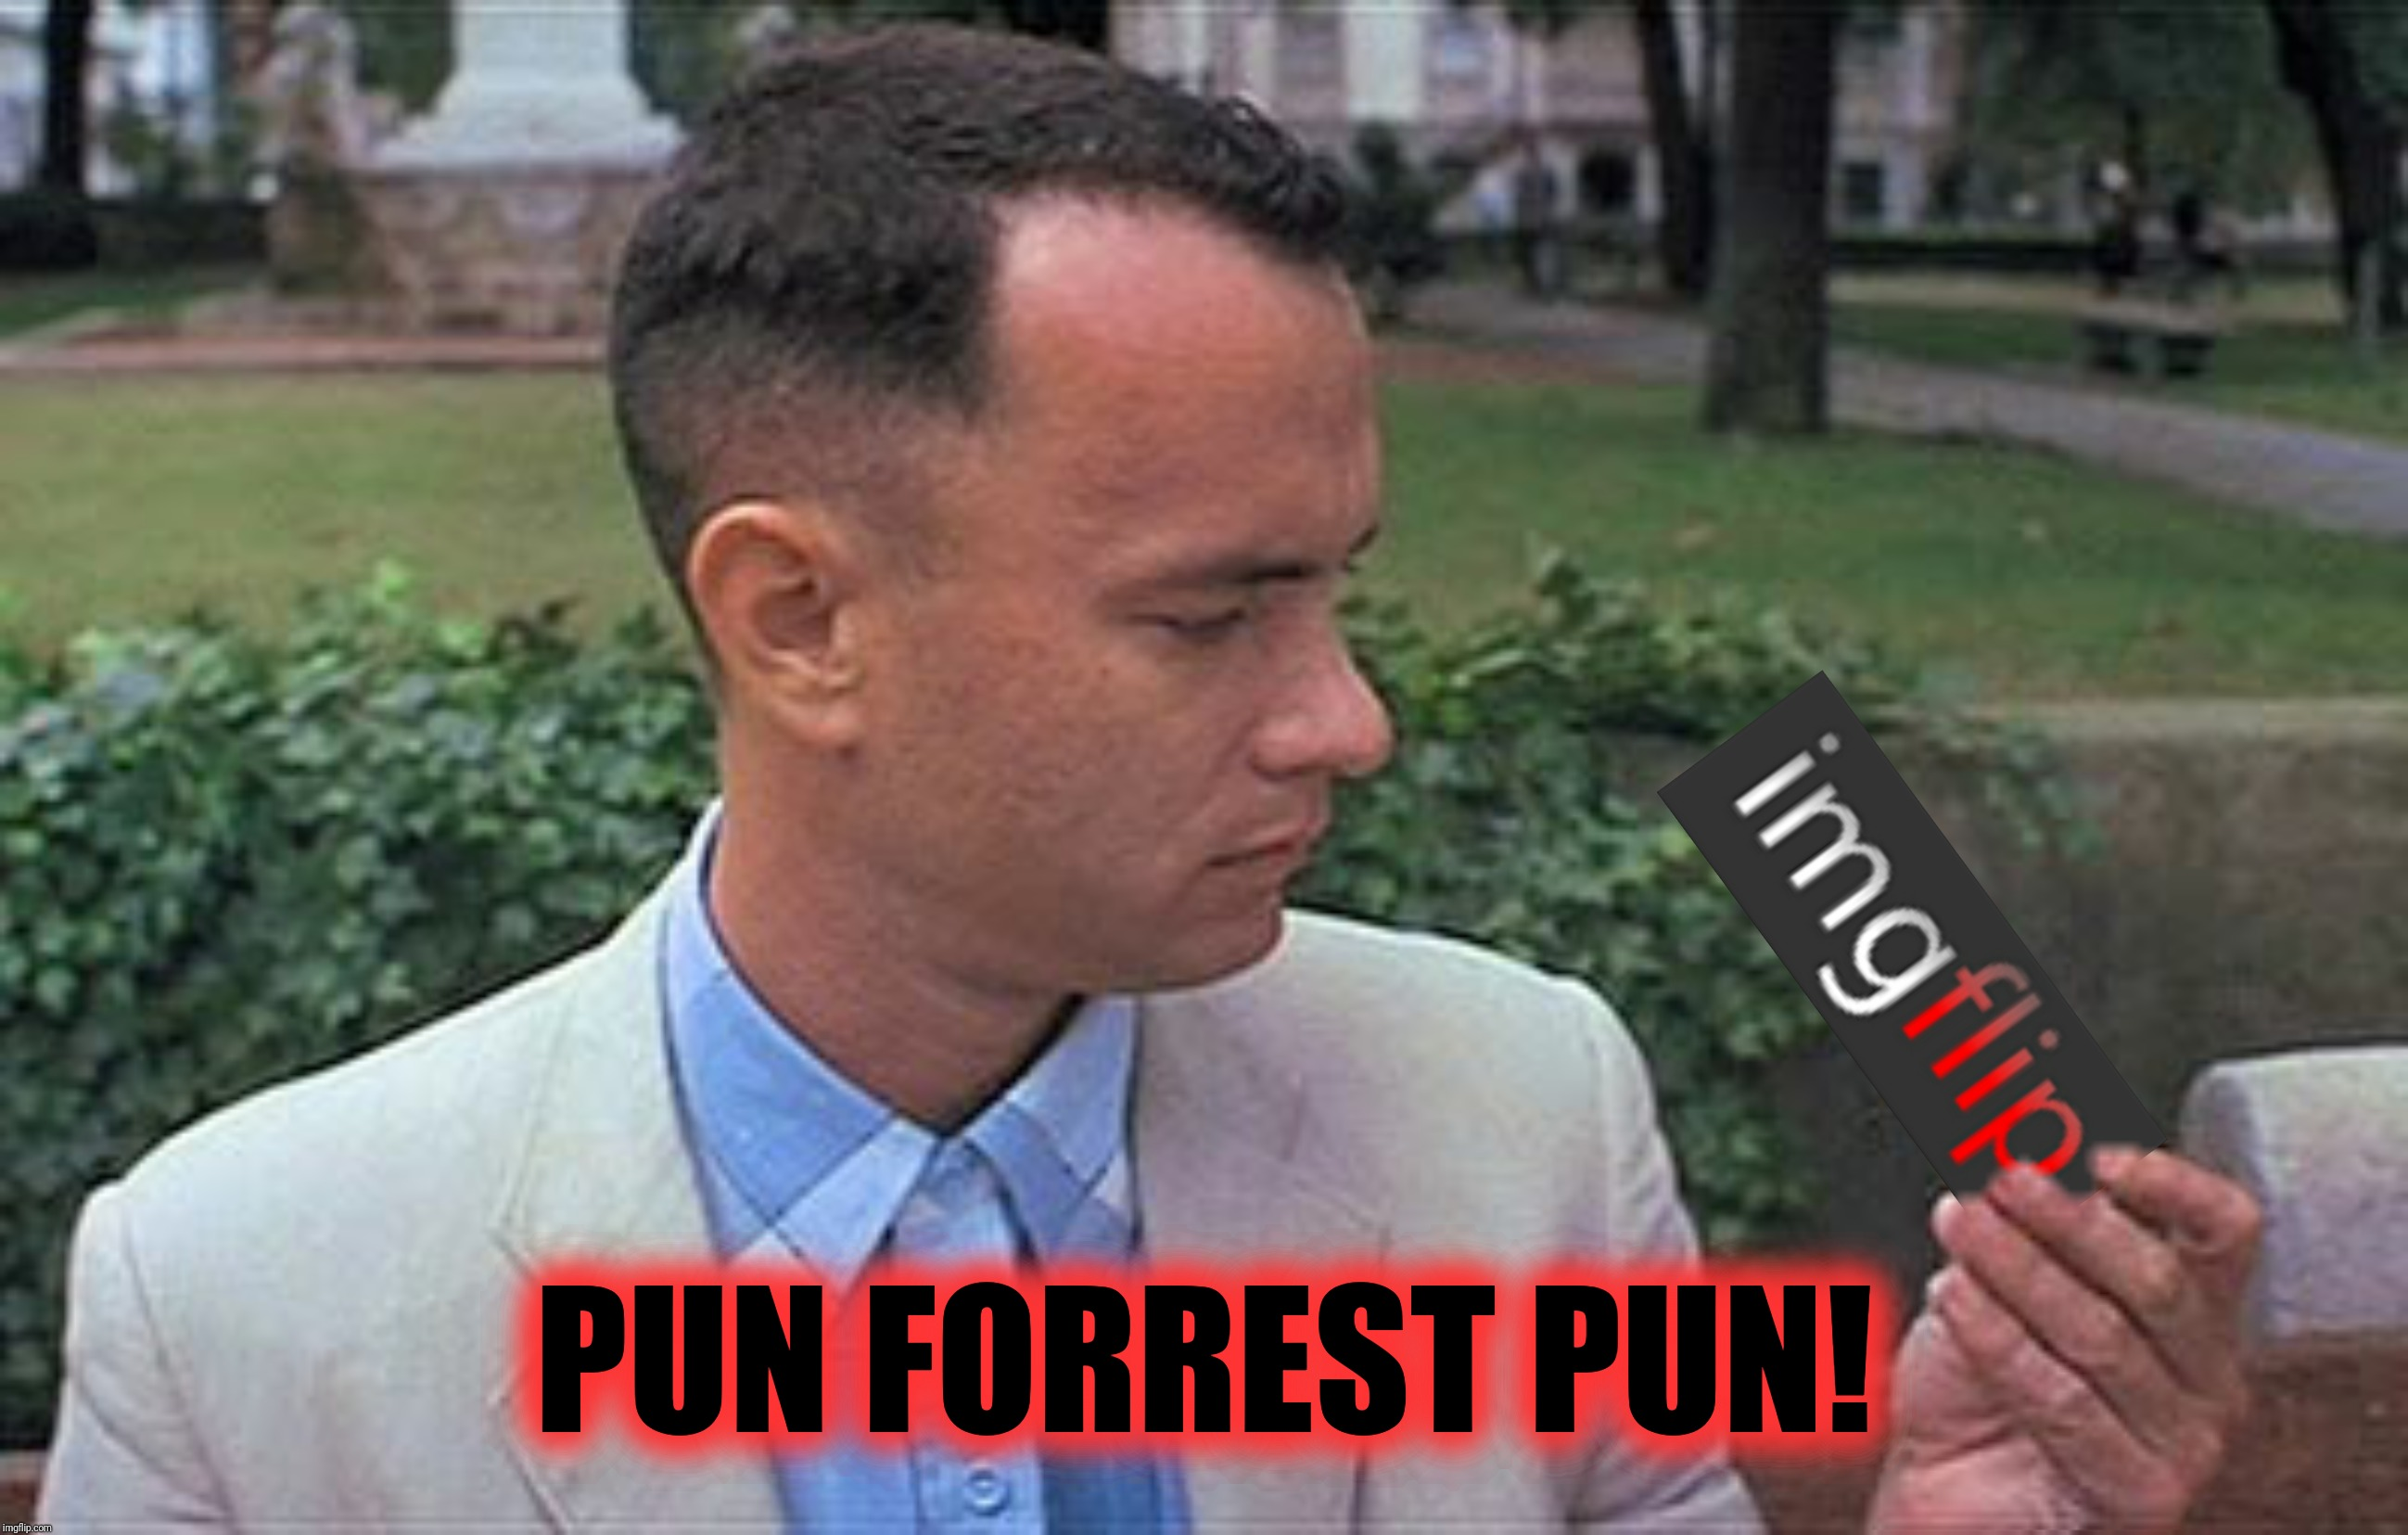 I may not be a smart man...but I know what a pun is.  Forrest Gump Week Feb 10th-16th (A CravenMoordik Event) | PUN FORREST PUN! | image tagged in forrest gump week,imgflip,pun,run forrest run,pun forrest pun | made w/ Imgflip meme maker